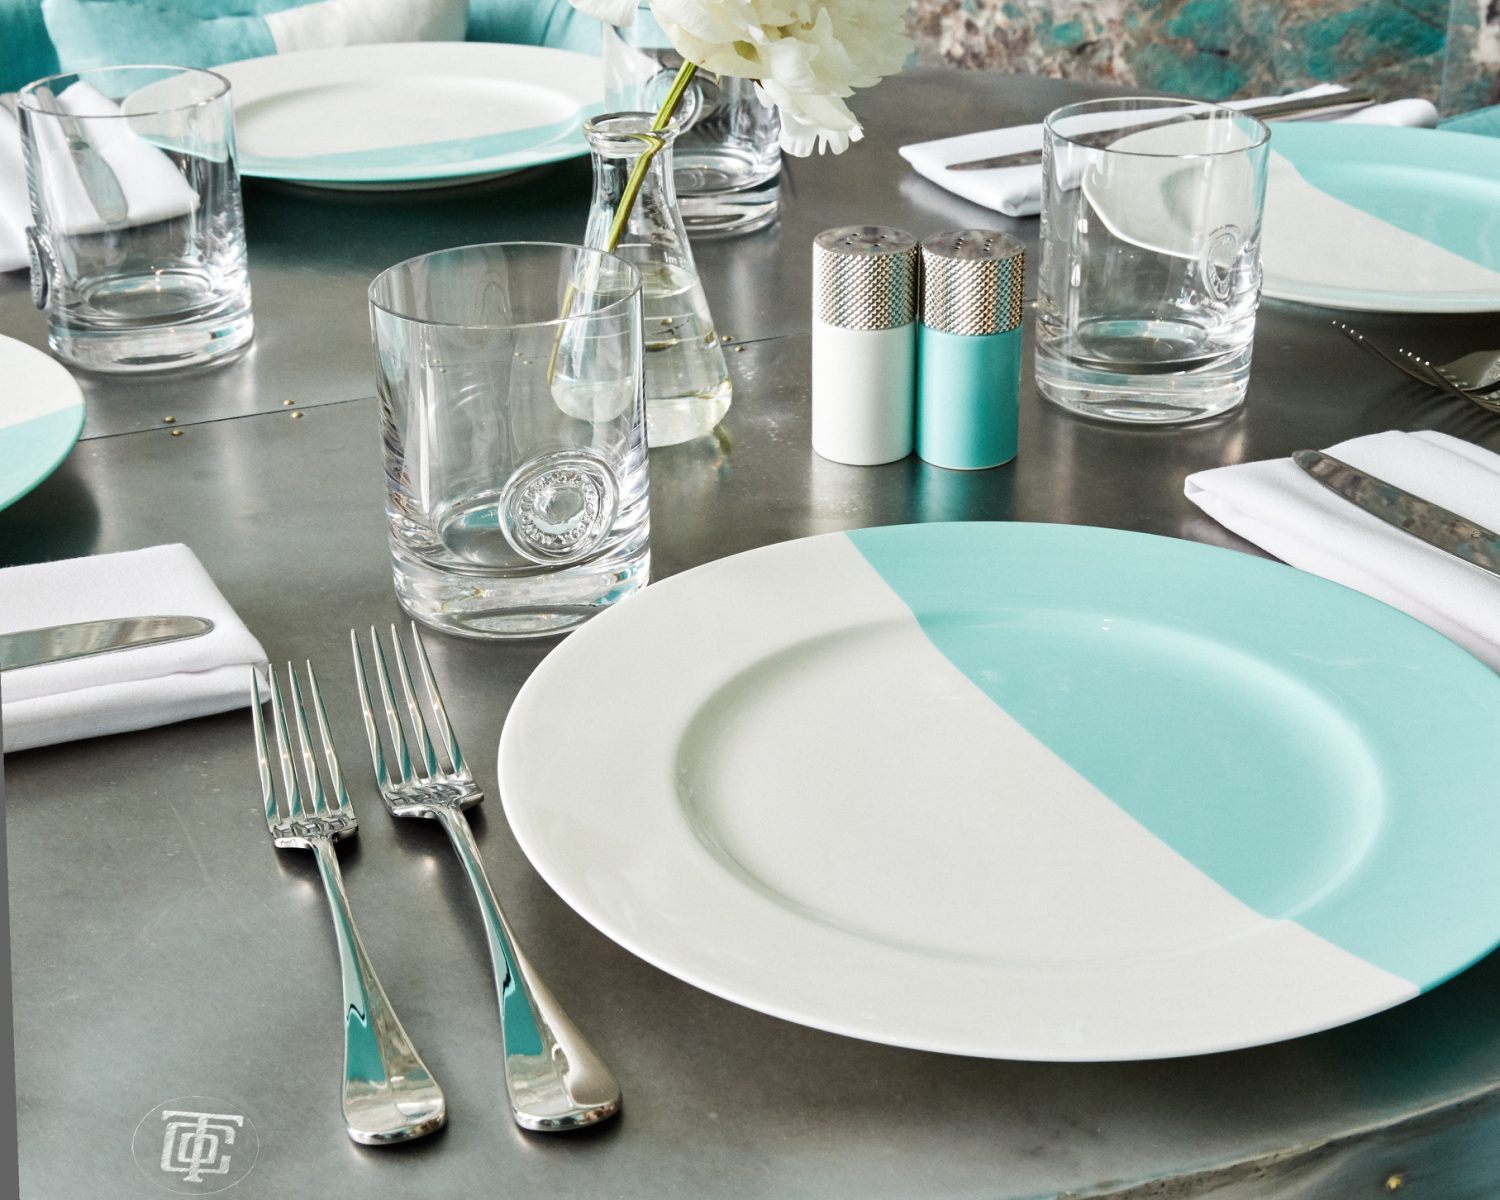 Tiffany & co blue box cafe bridal shower